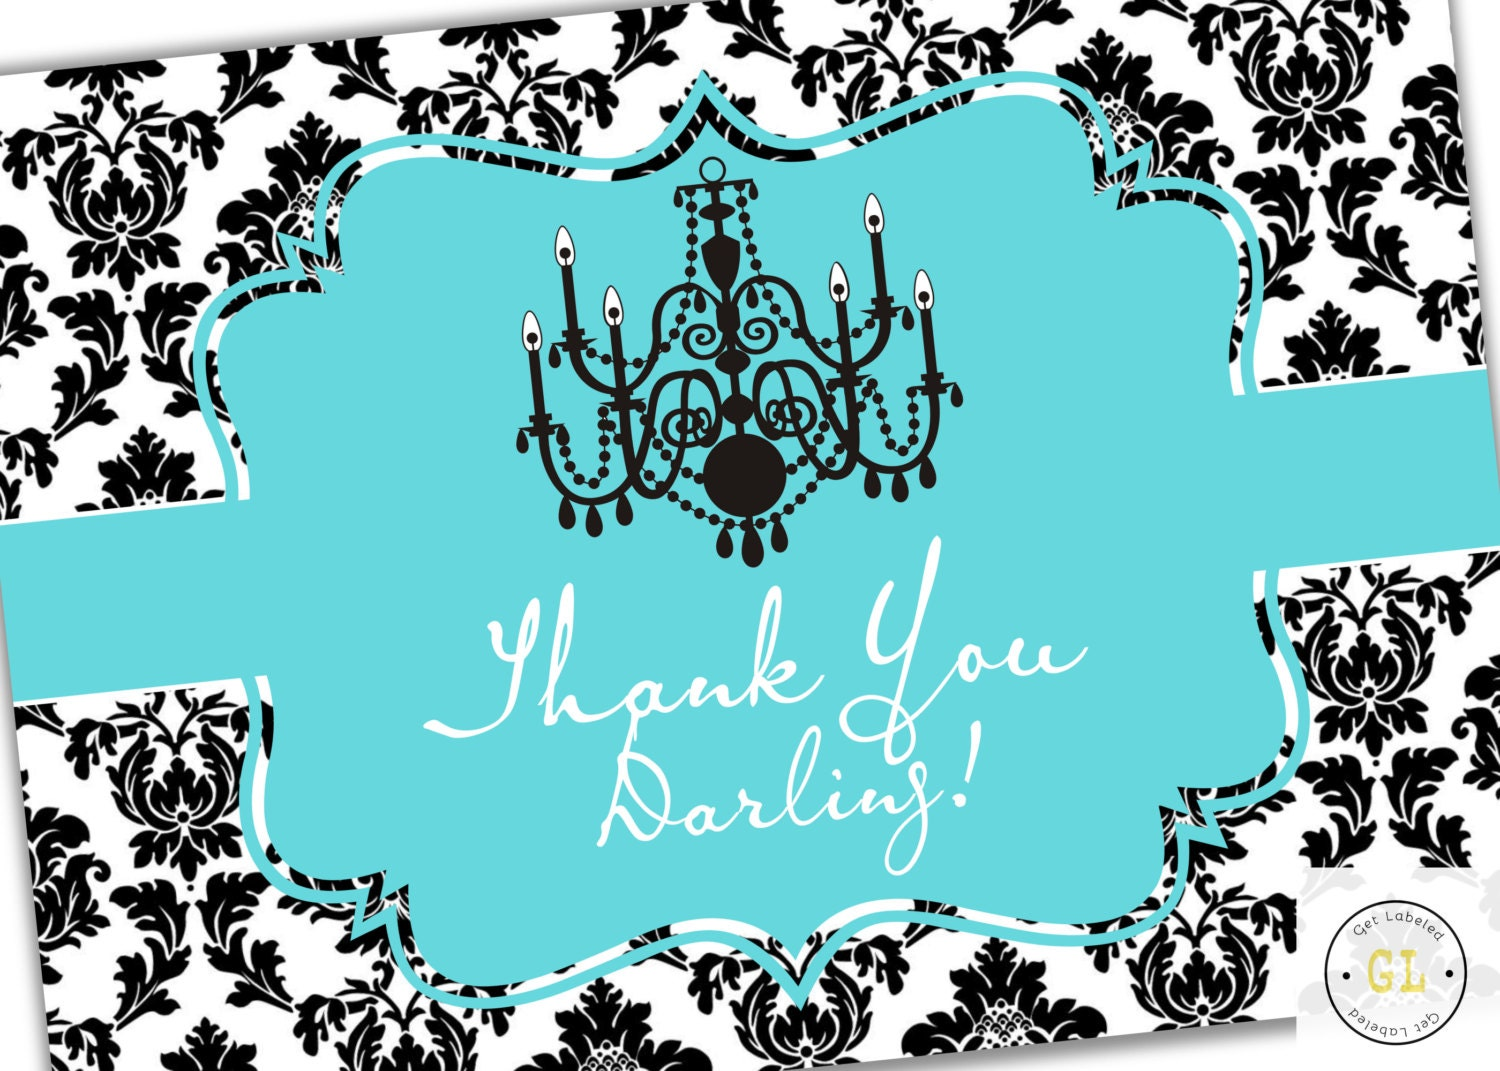 bridal shower thank you cards etiquette%0A when should you send out thank cards after bridal shower zoom